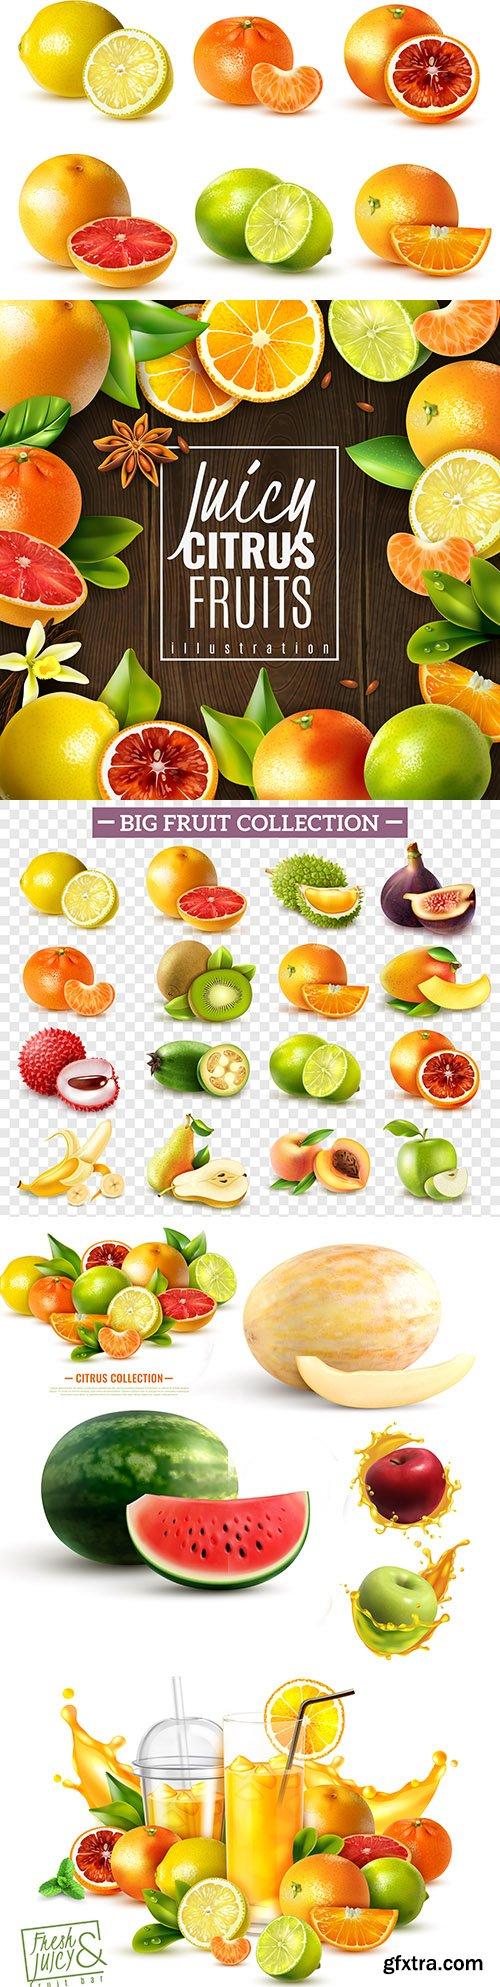 Ripe and fresh fruit a realistic set whole and sliced